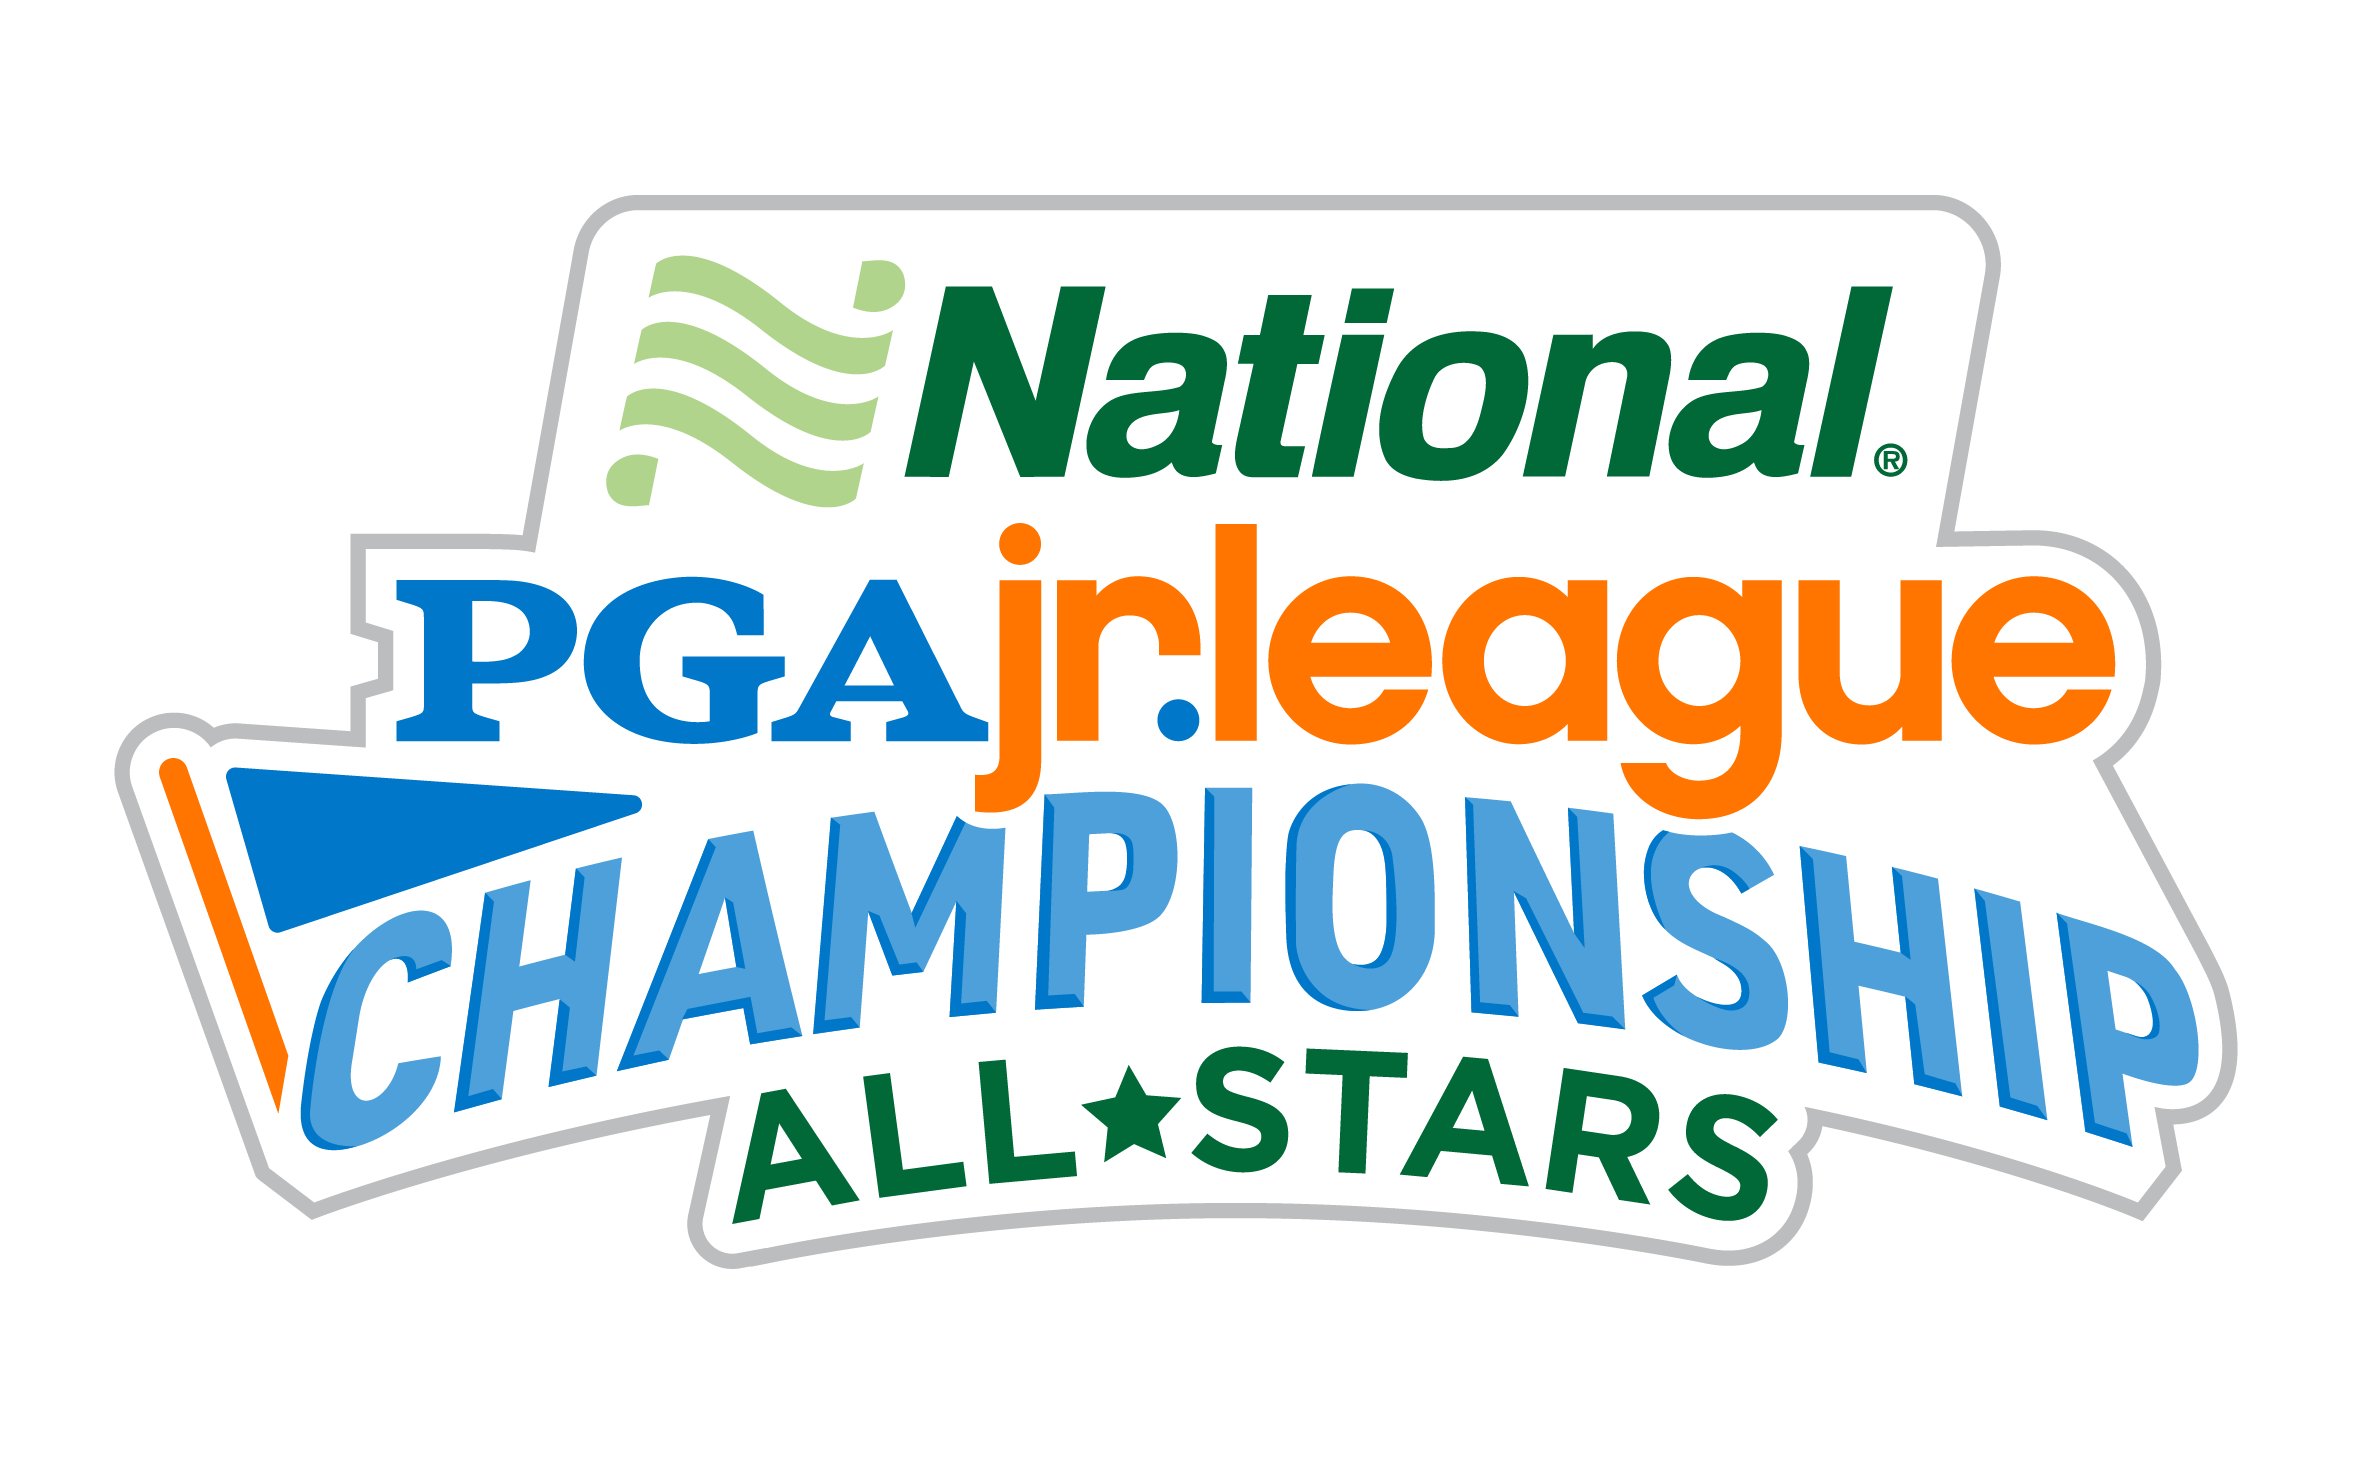 National Car Rental PGA Jr. League Championship Season